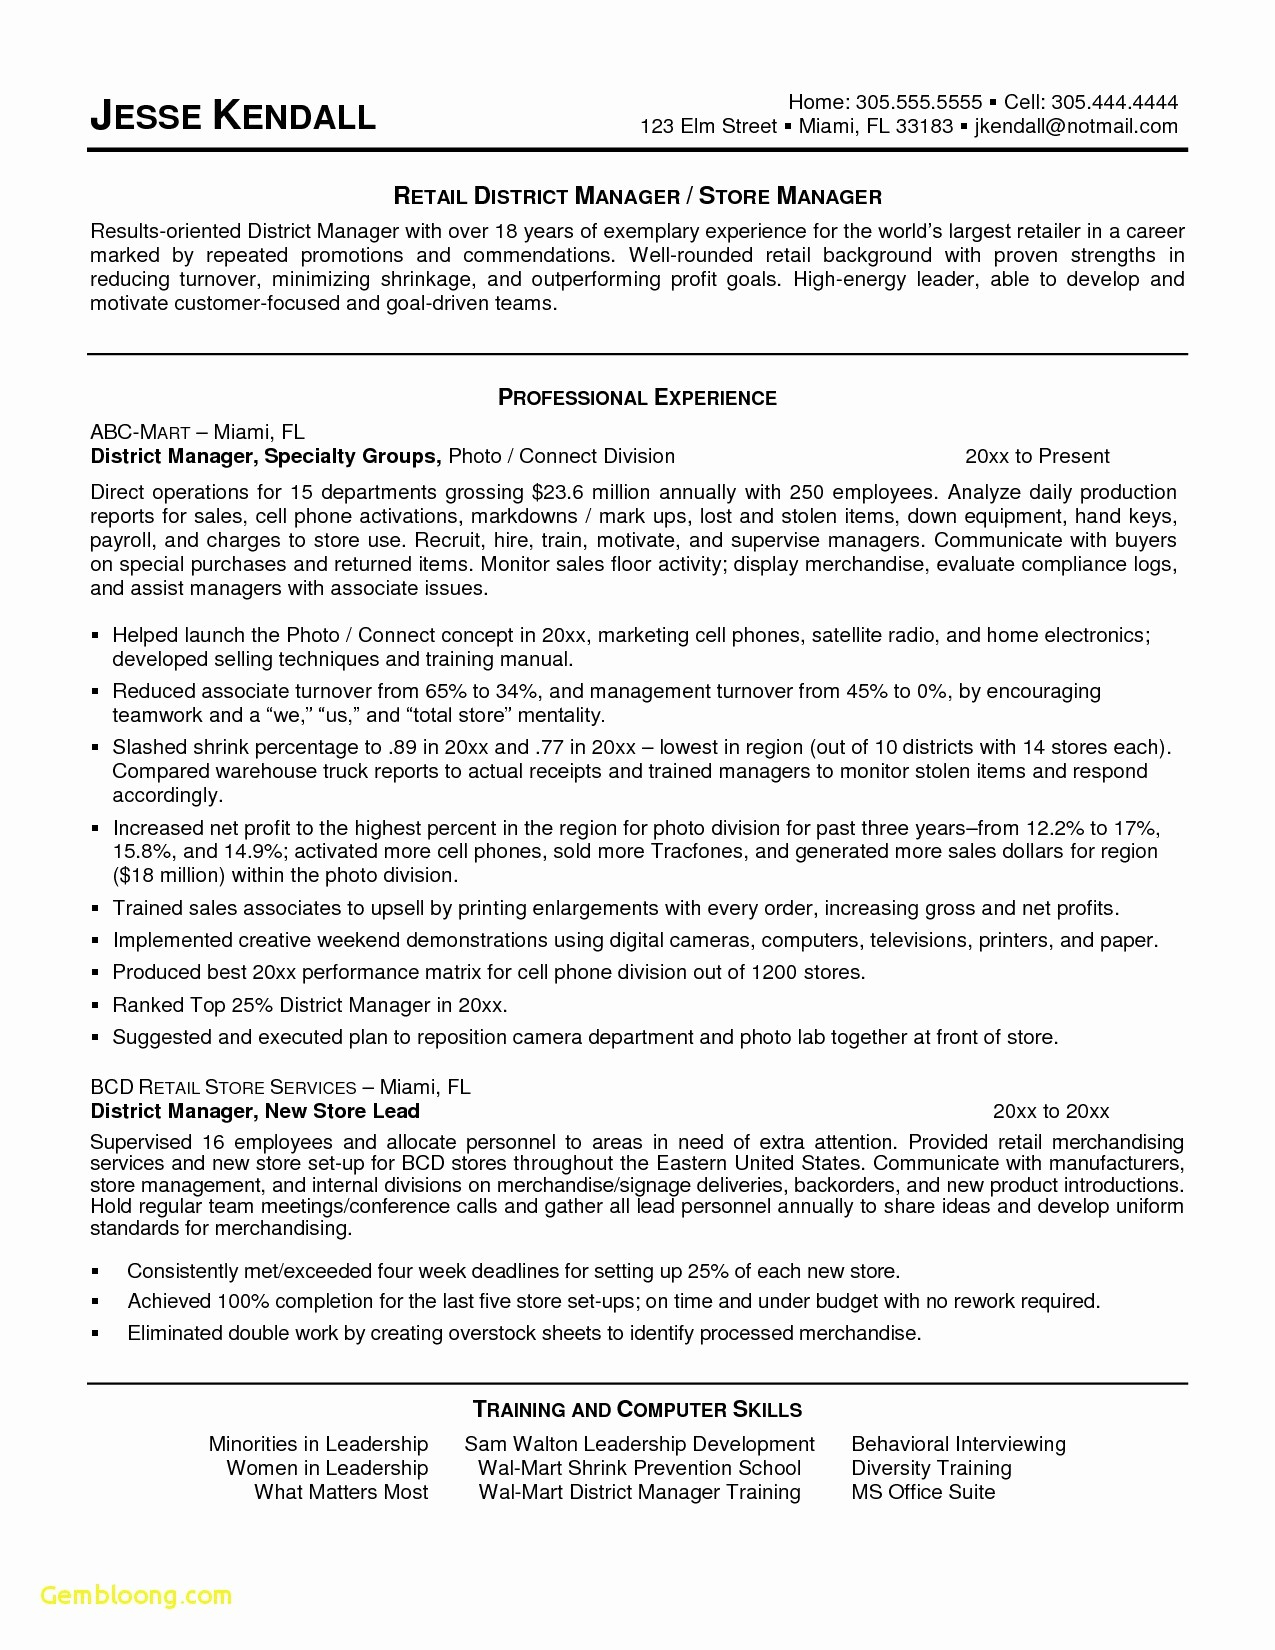 It Resume Writing Services - Writing A Great Resume Beautiful 20 Skills for Managers Resume